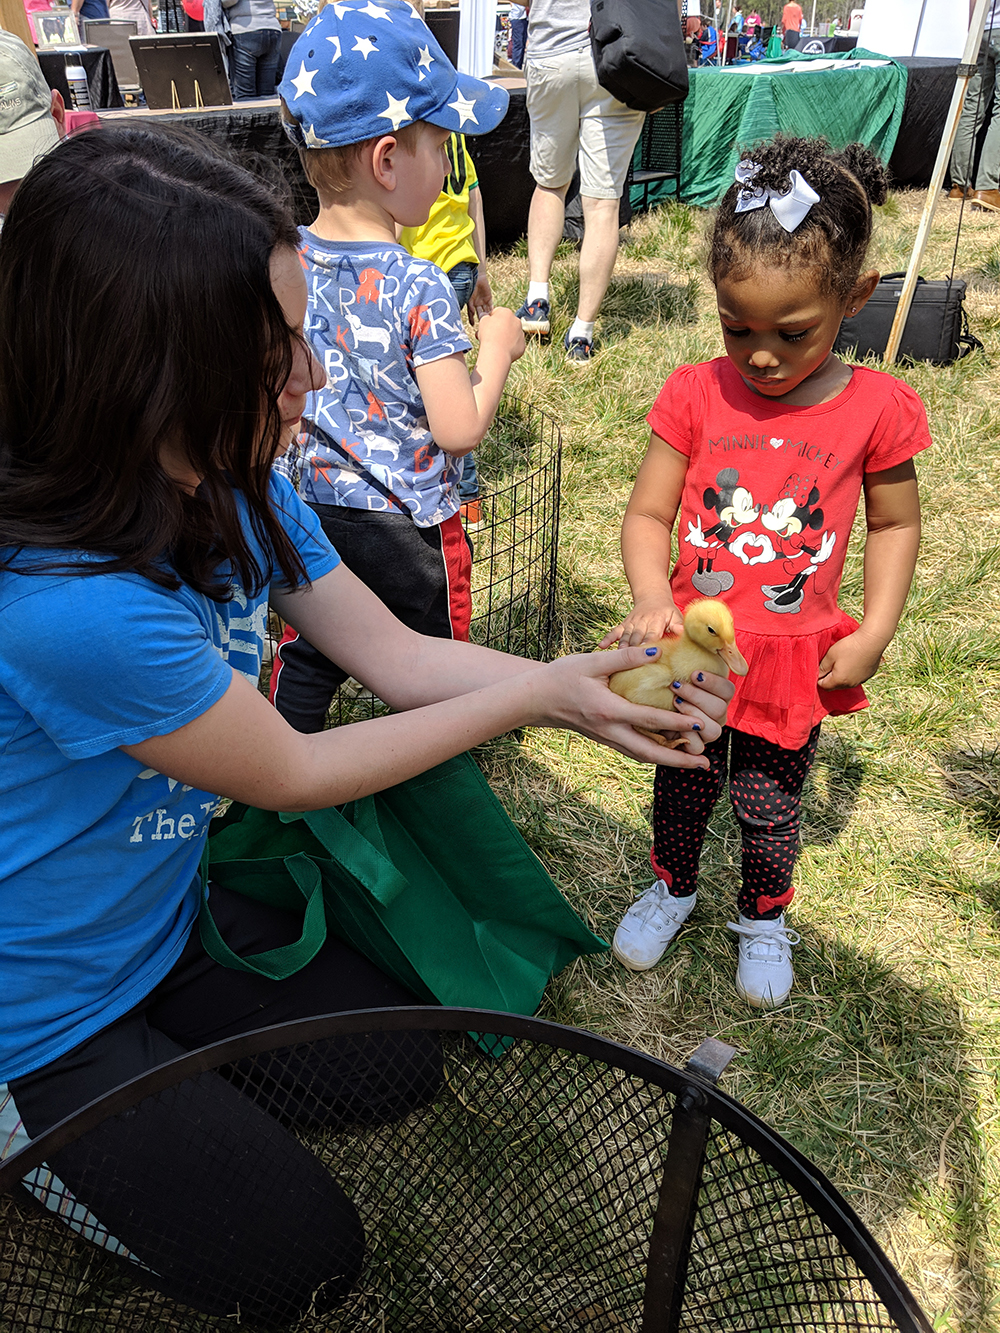 The Lilly Den Farm booth had all kinds of animals for kids to interact with from ducks to chicks, goats, rabbits, and a milking cow.